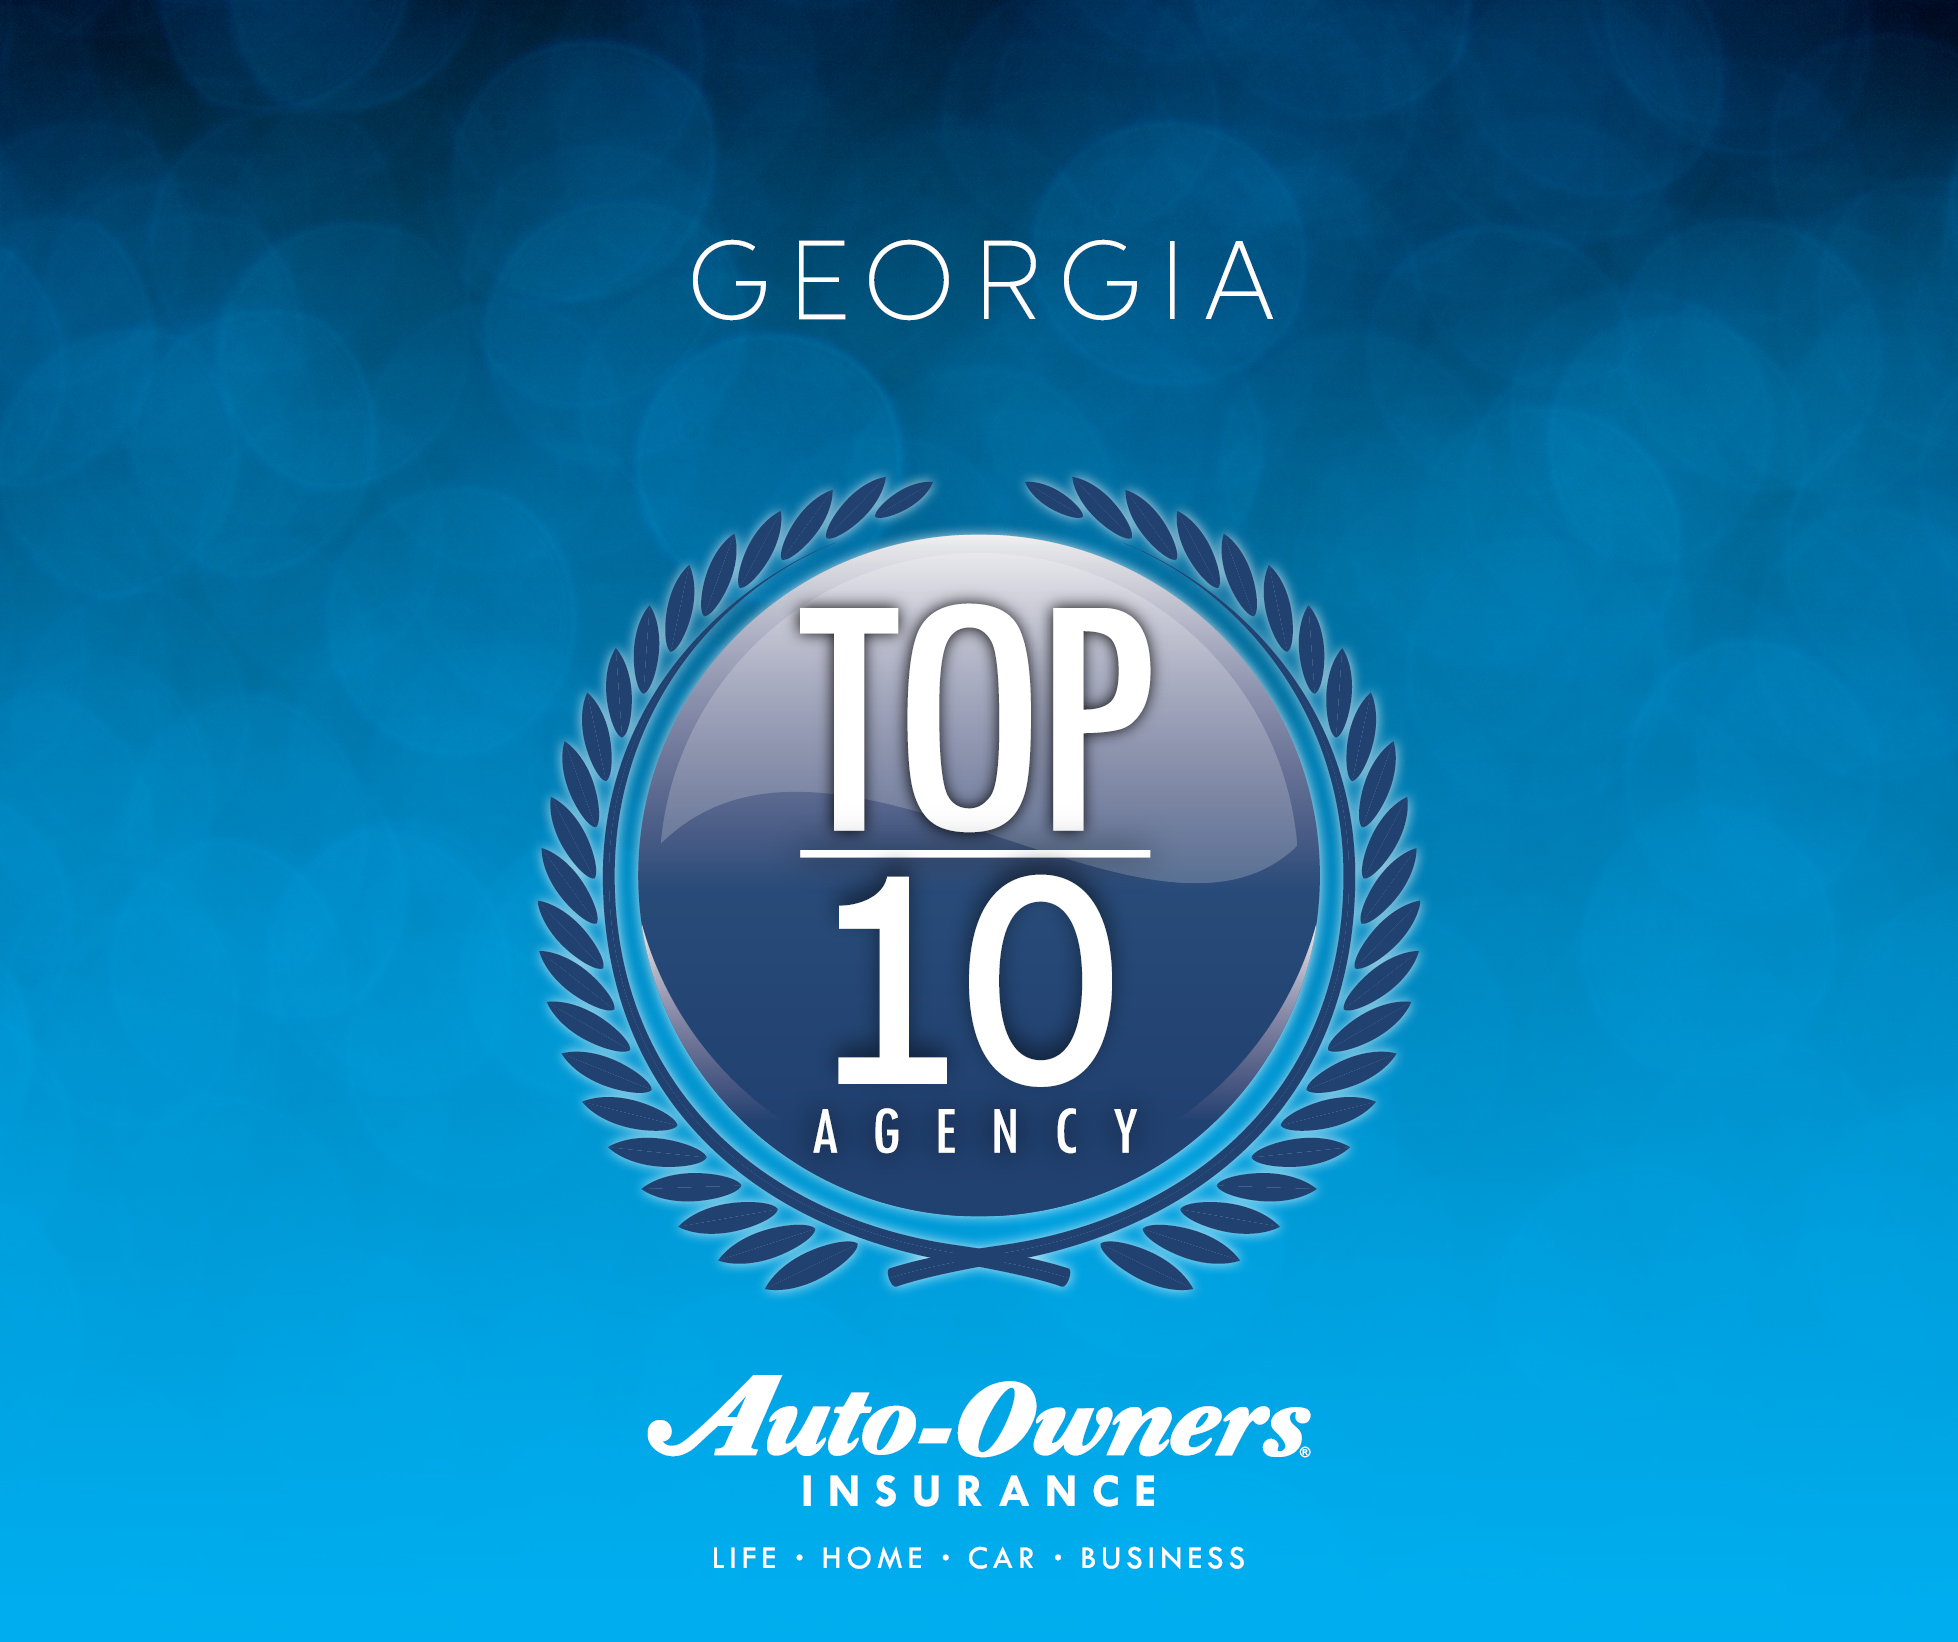 Norton Named Georgia Top 10 Agency for Auto-Owners Insurance